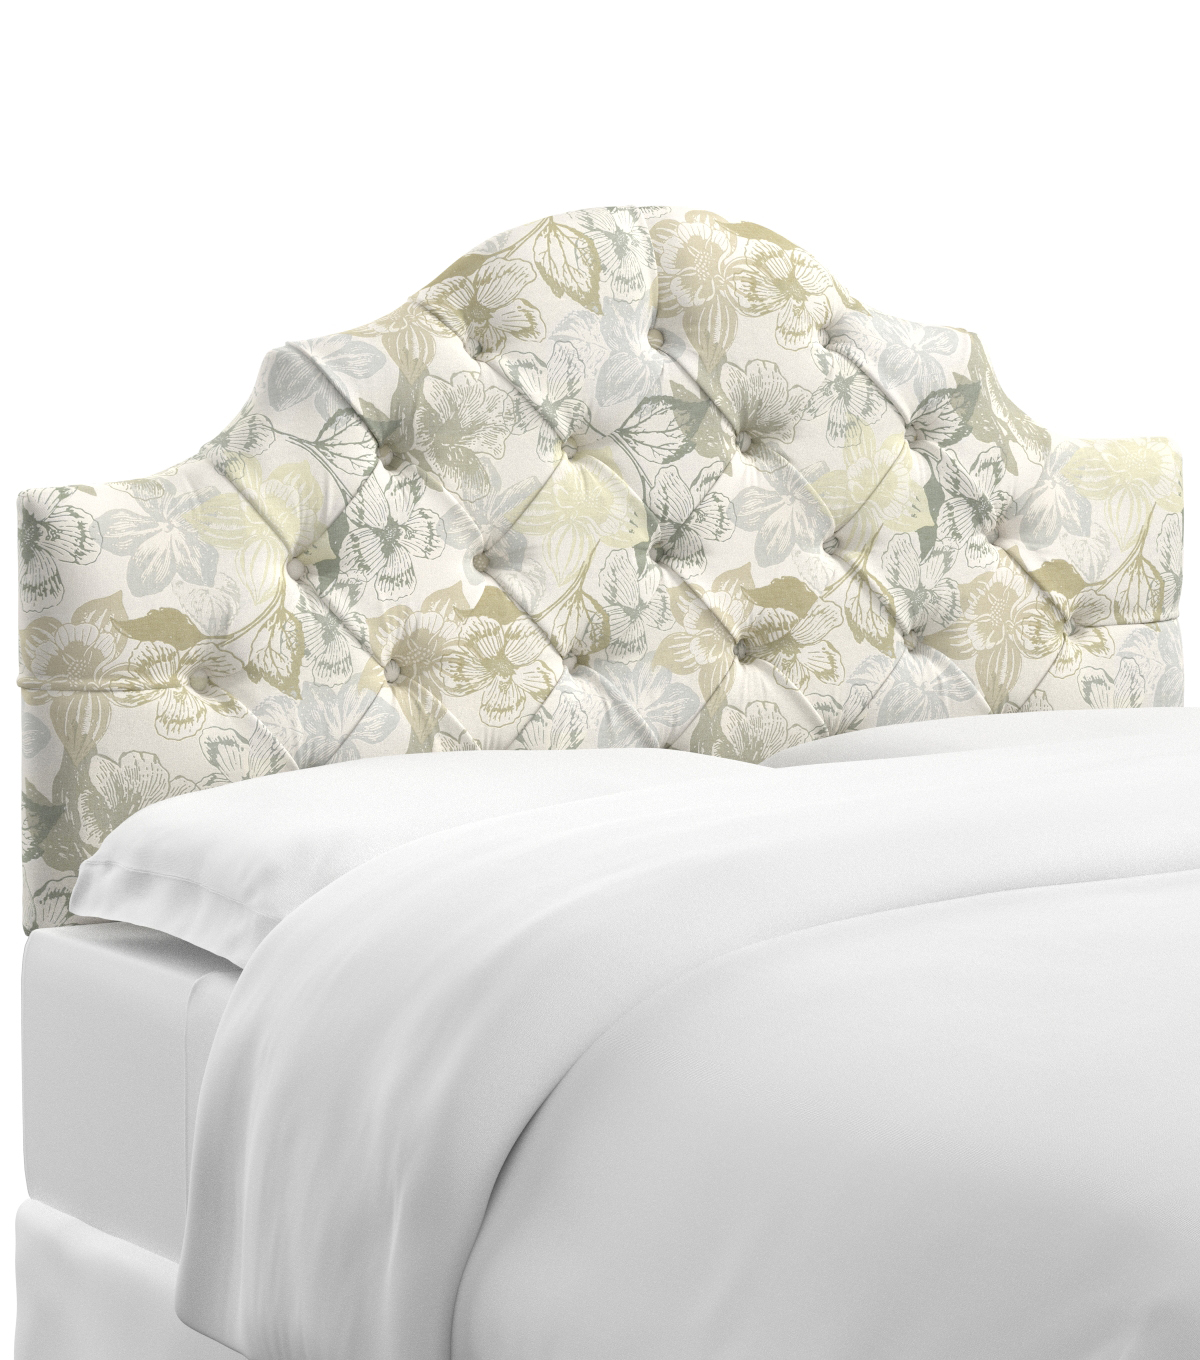 Skyline Furniture Tufted Notched Headboard-Queen